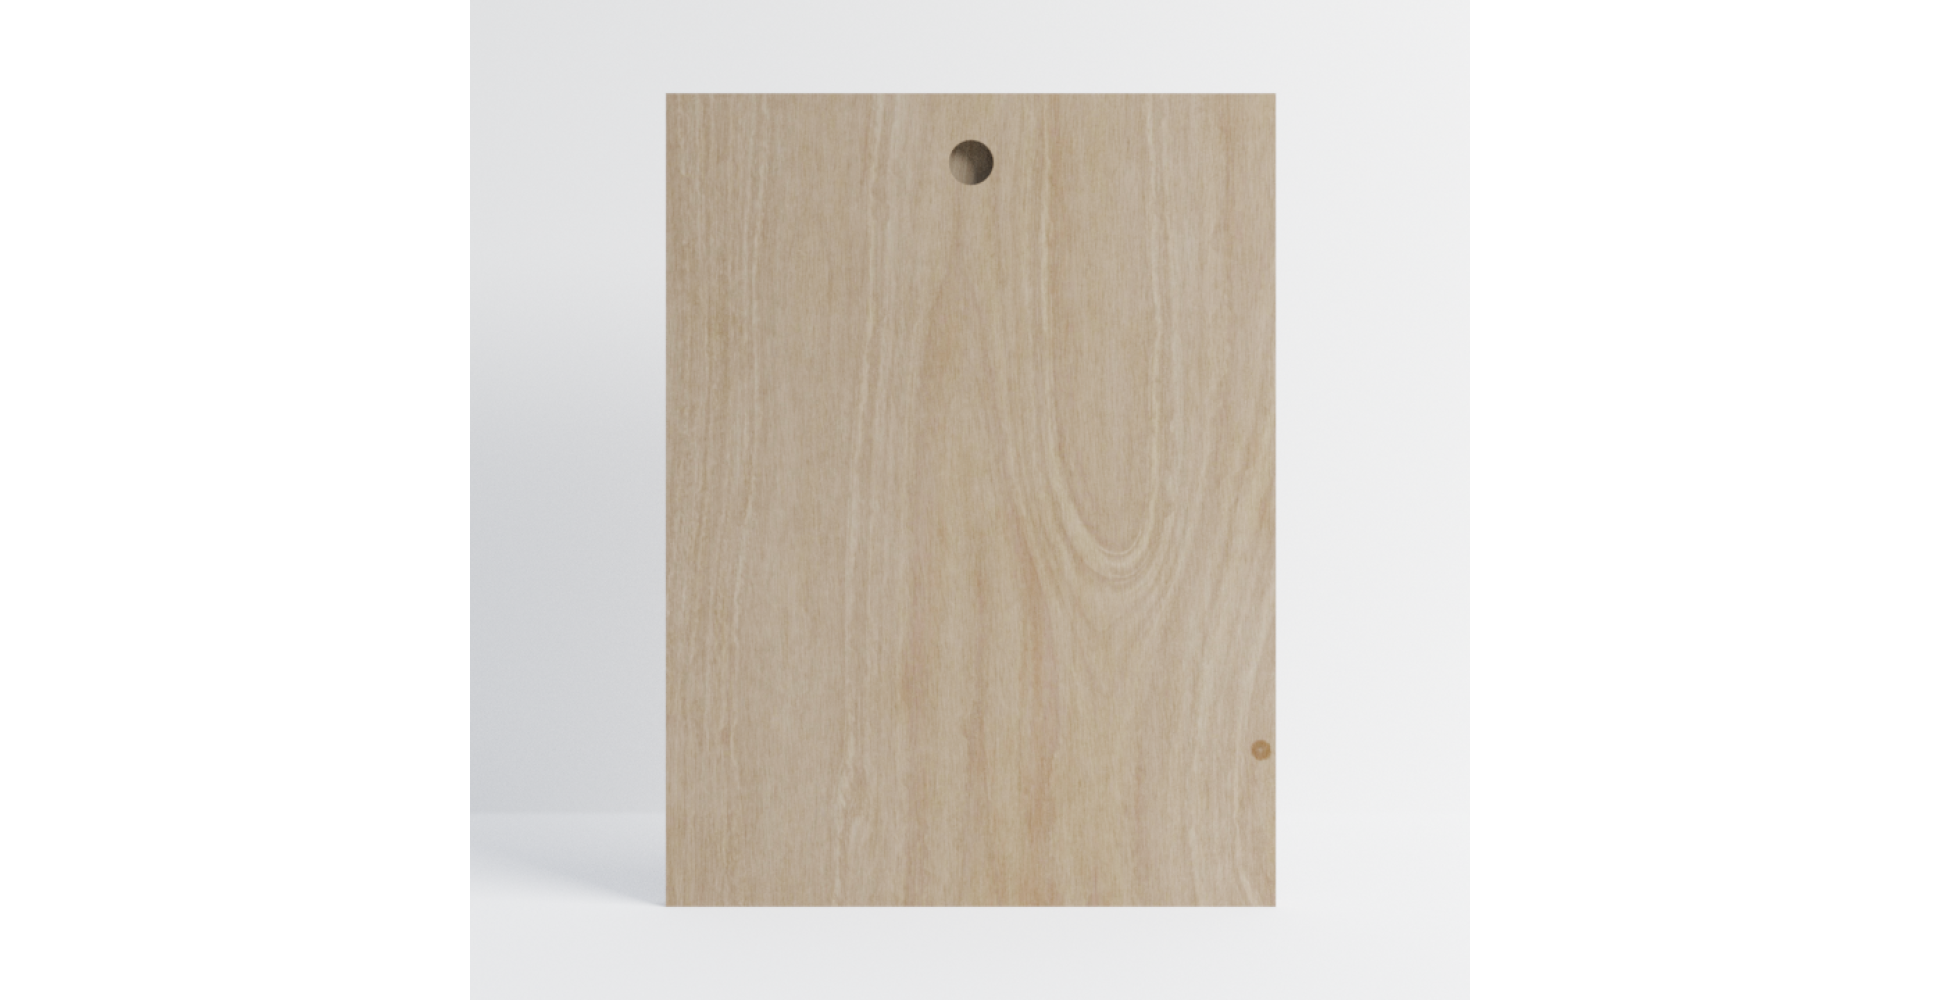 Birch Ply Scandi Ladbroke Front